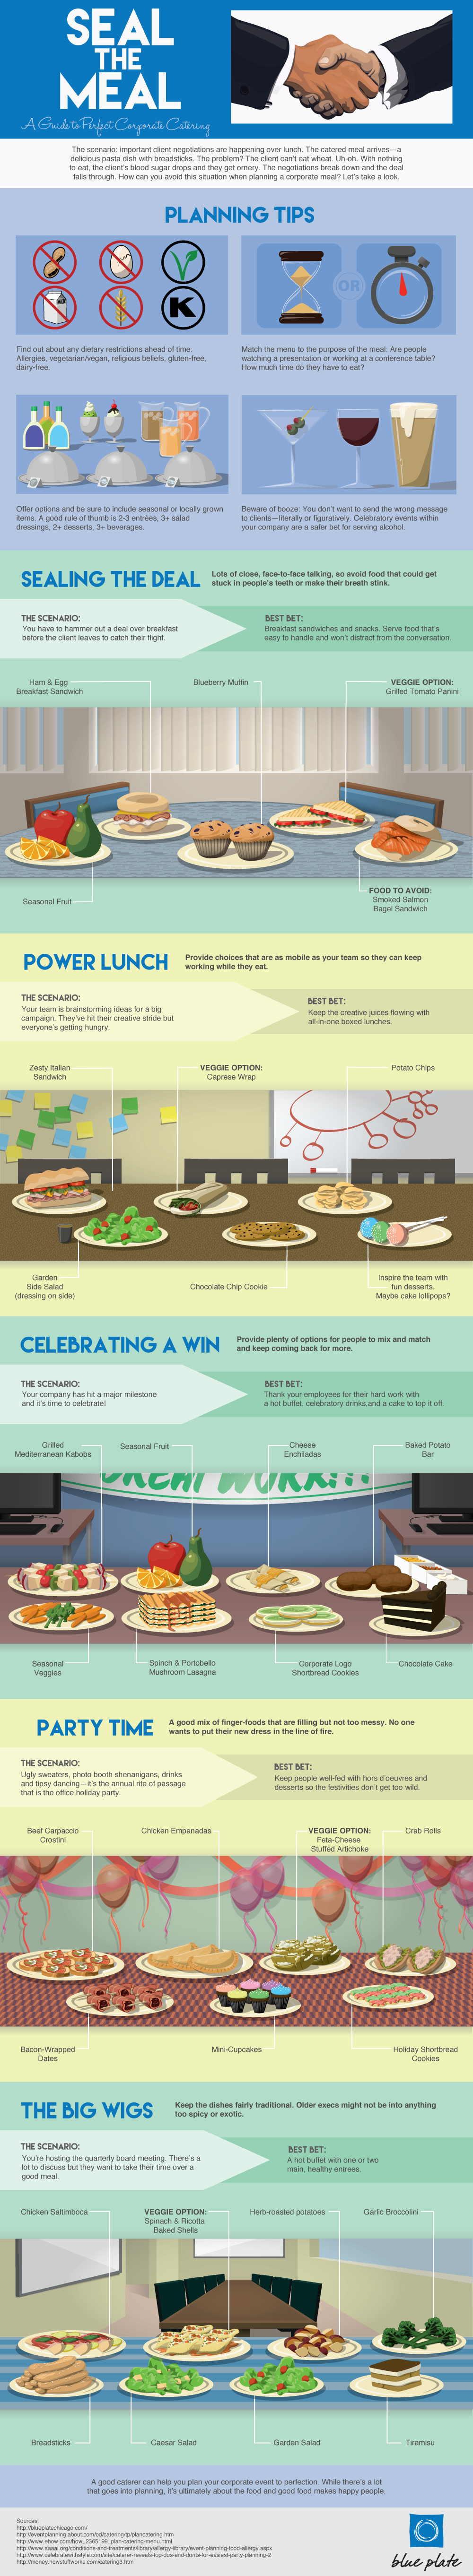 Corporate Catering Guide Infographic